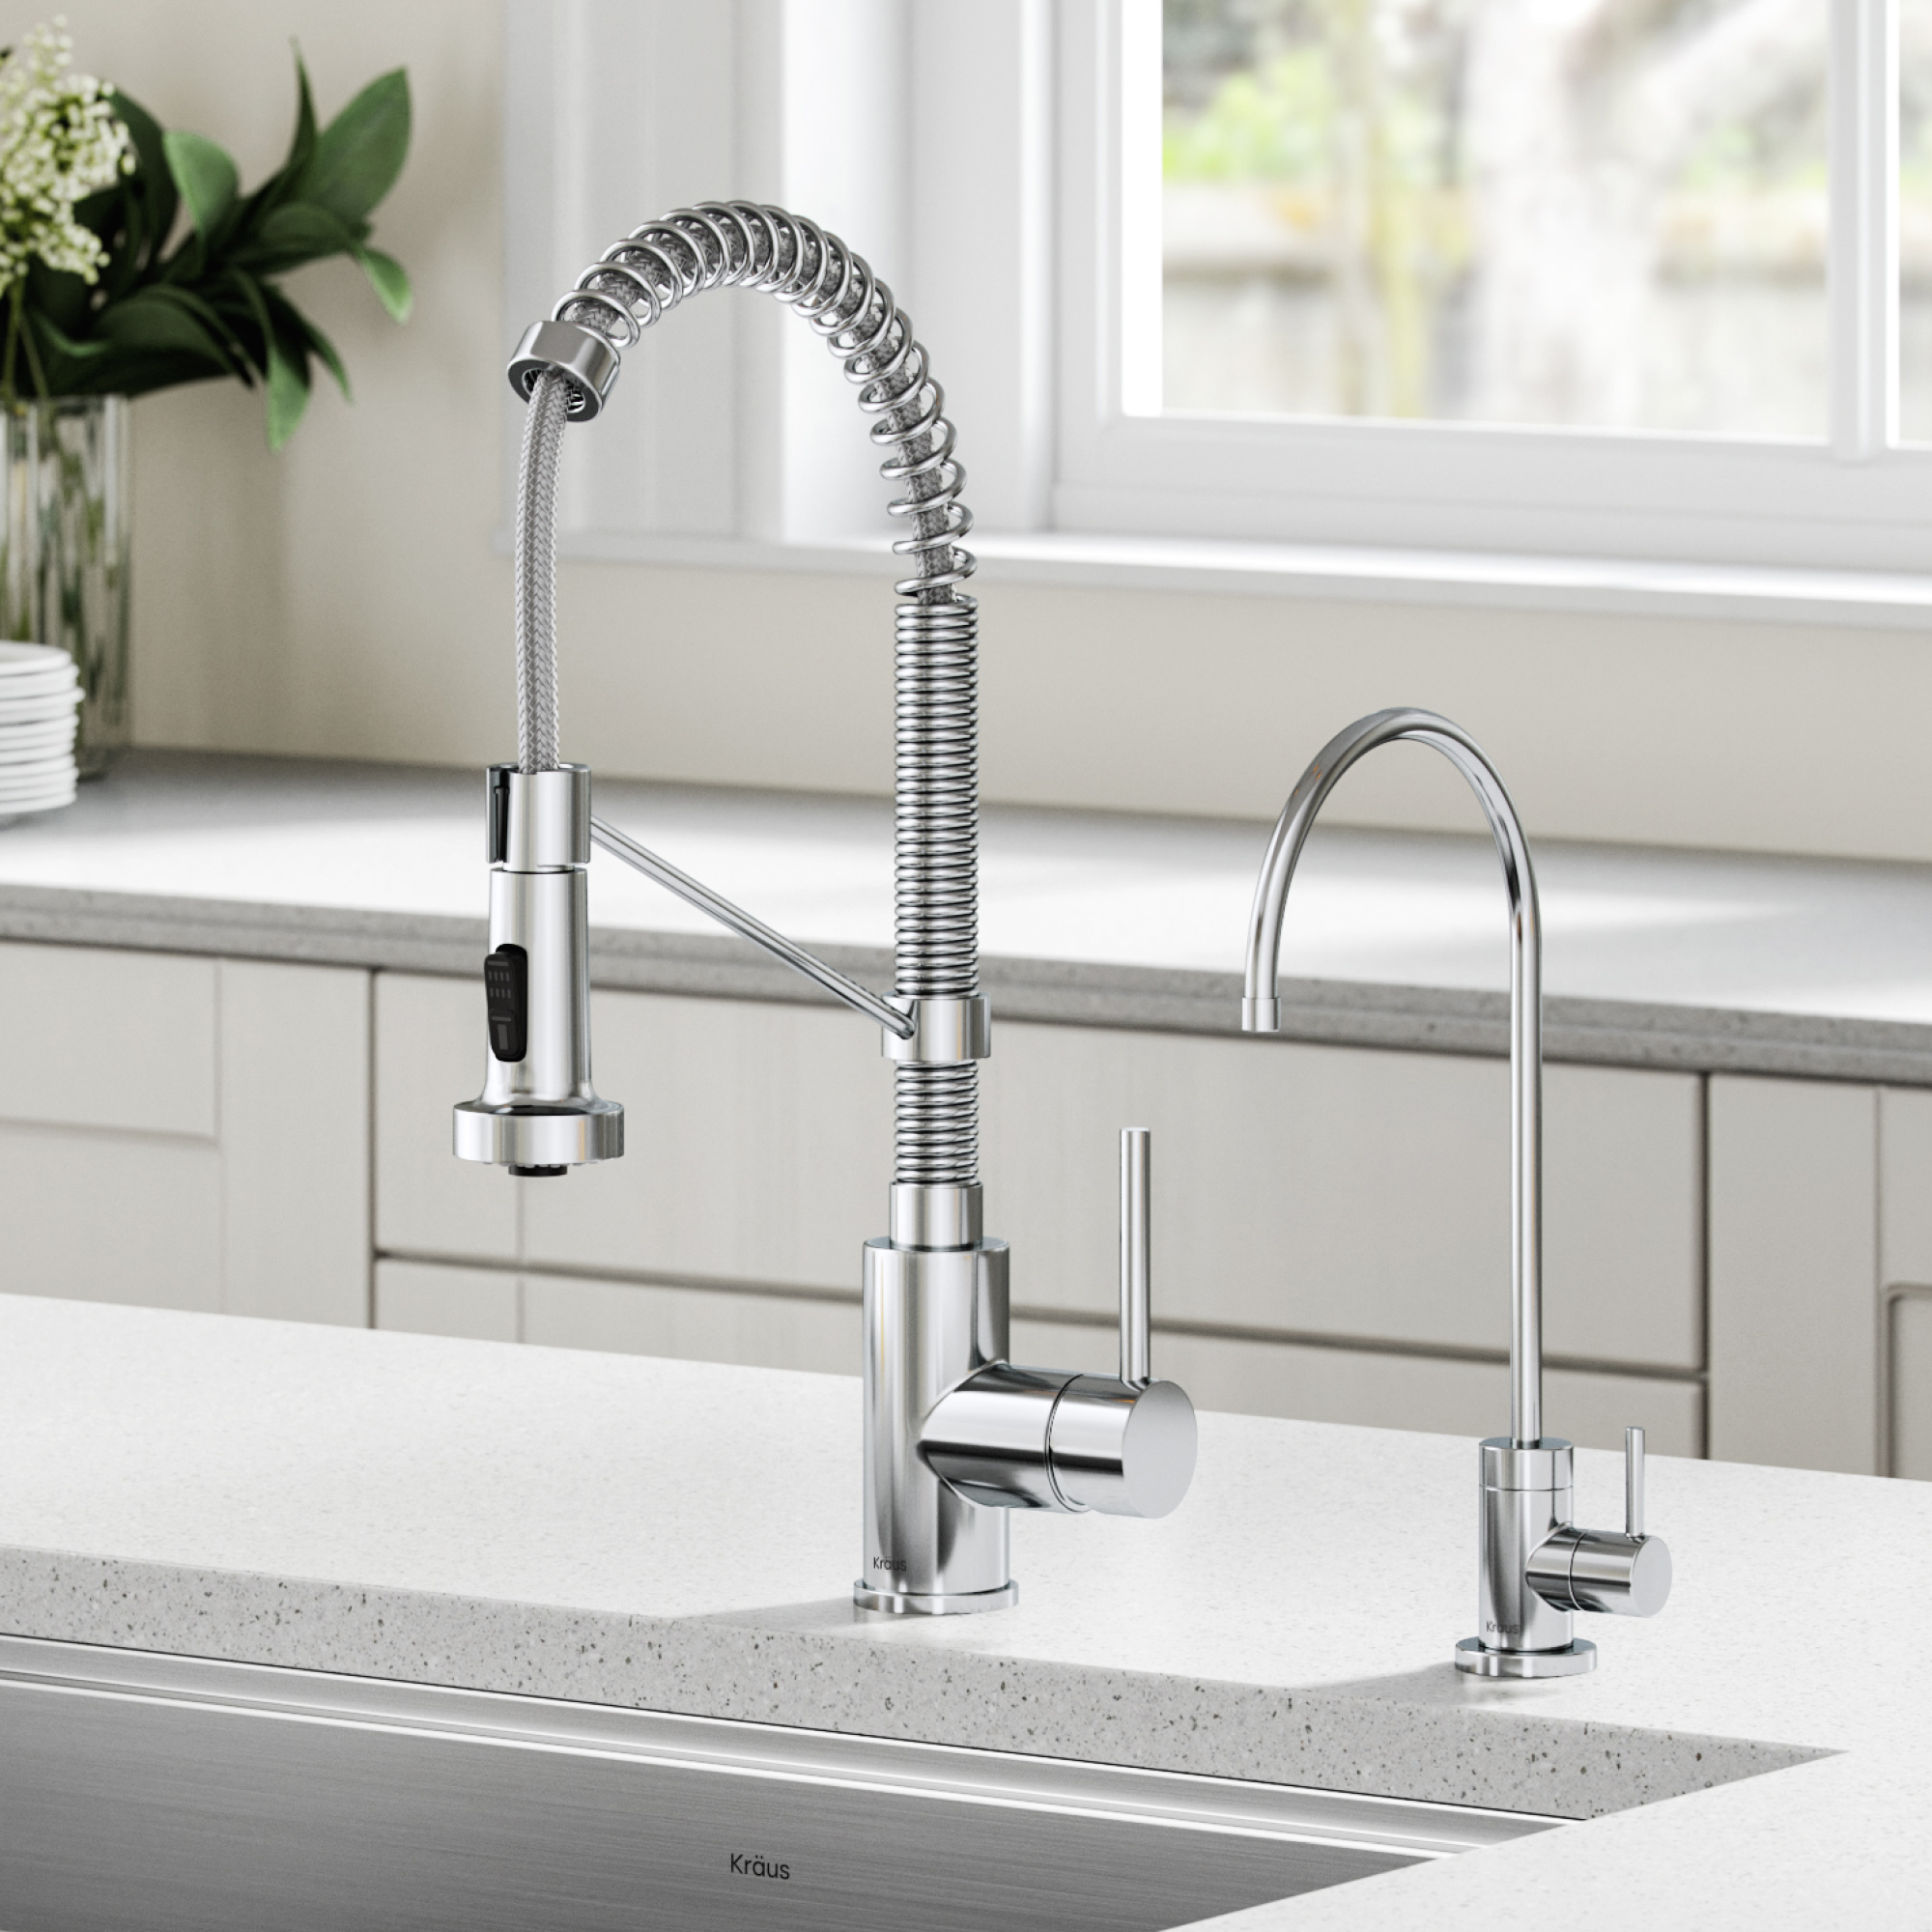 kraus bolden commercial style pull down kitchen faucet and purita water filter faucet combo in chrome